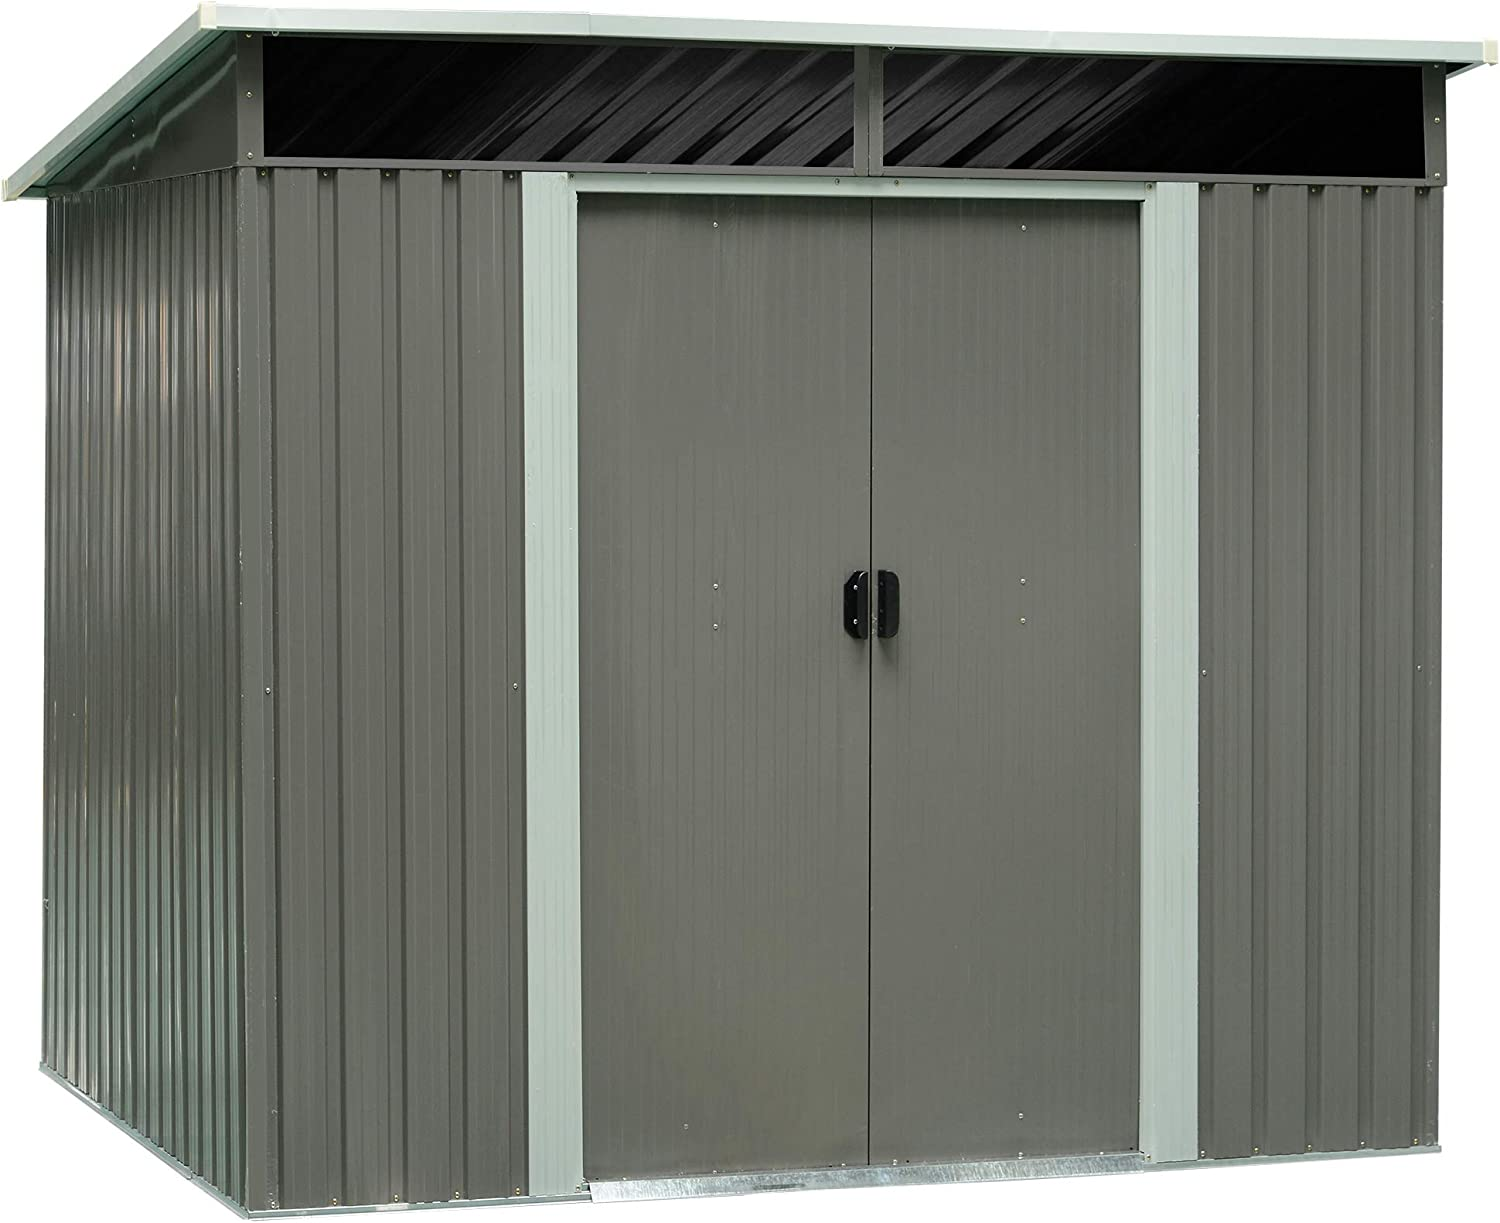 Outsunny 6.3 x 7.8 Steel Outdoor Garden Storage Shed Yard Tool House